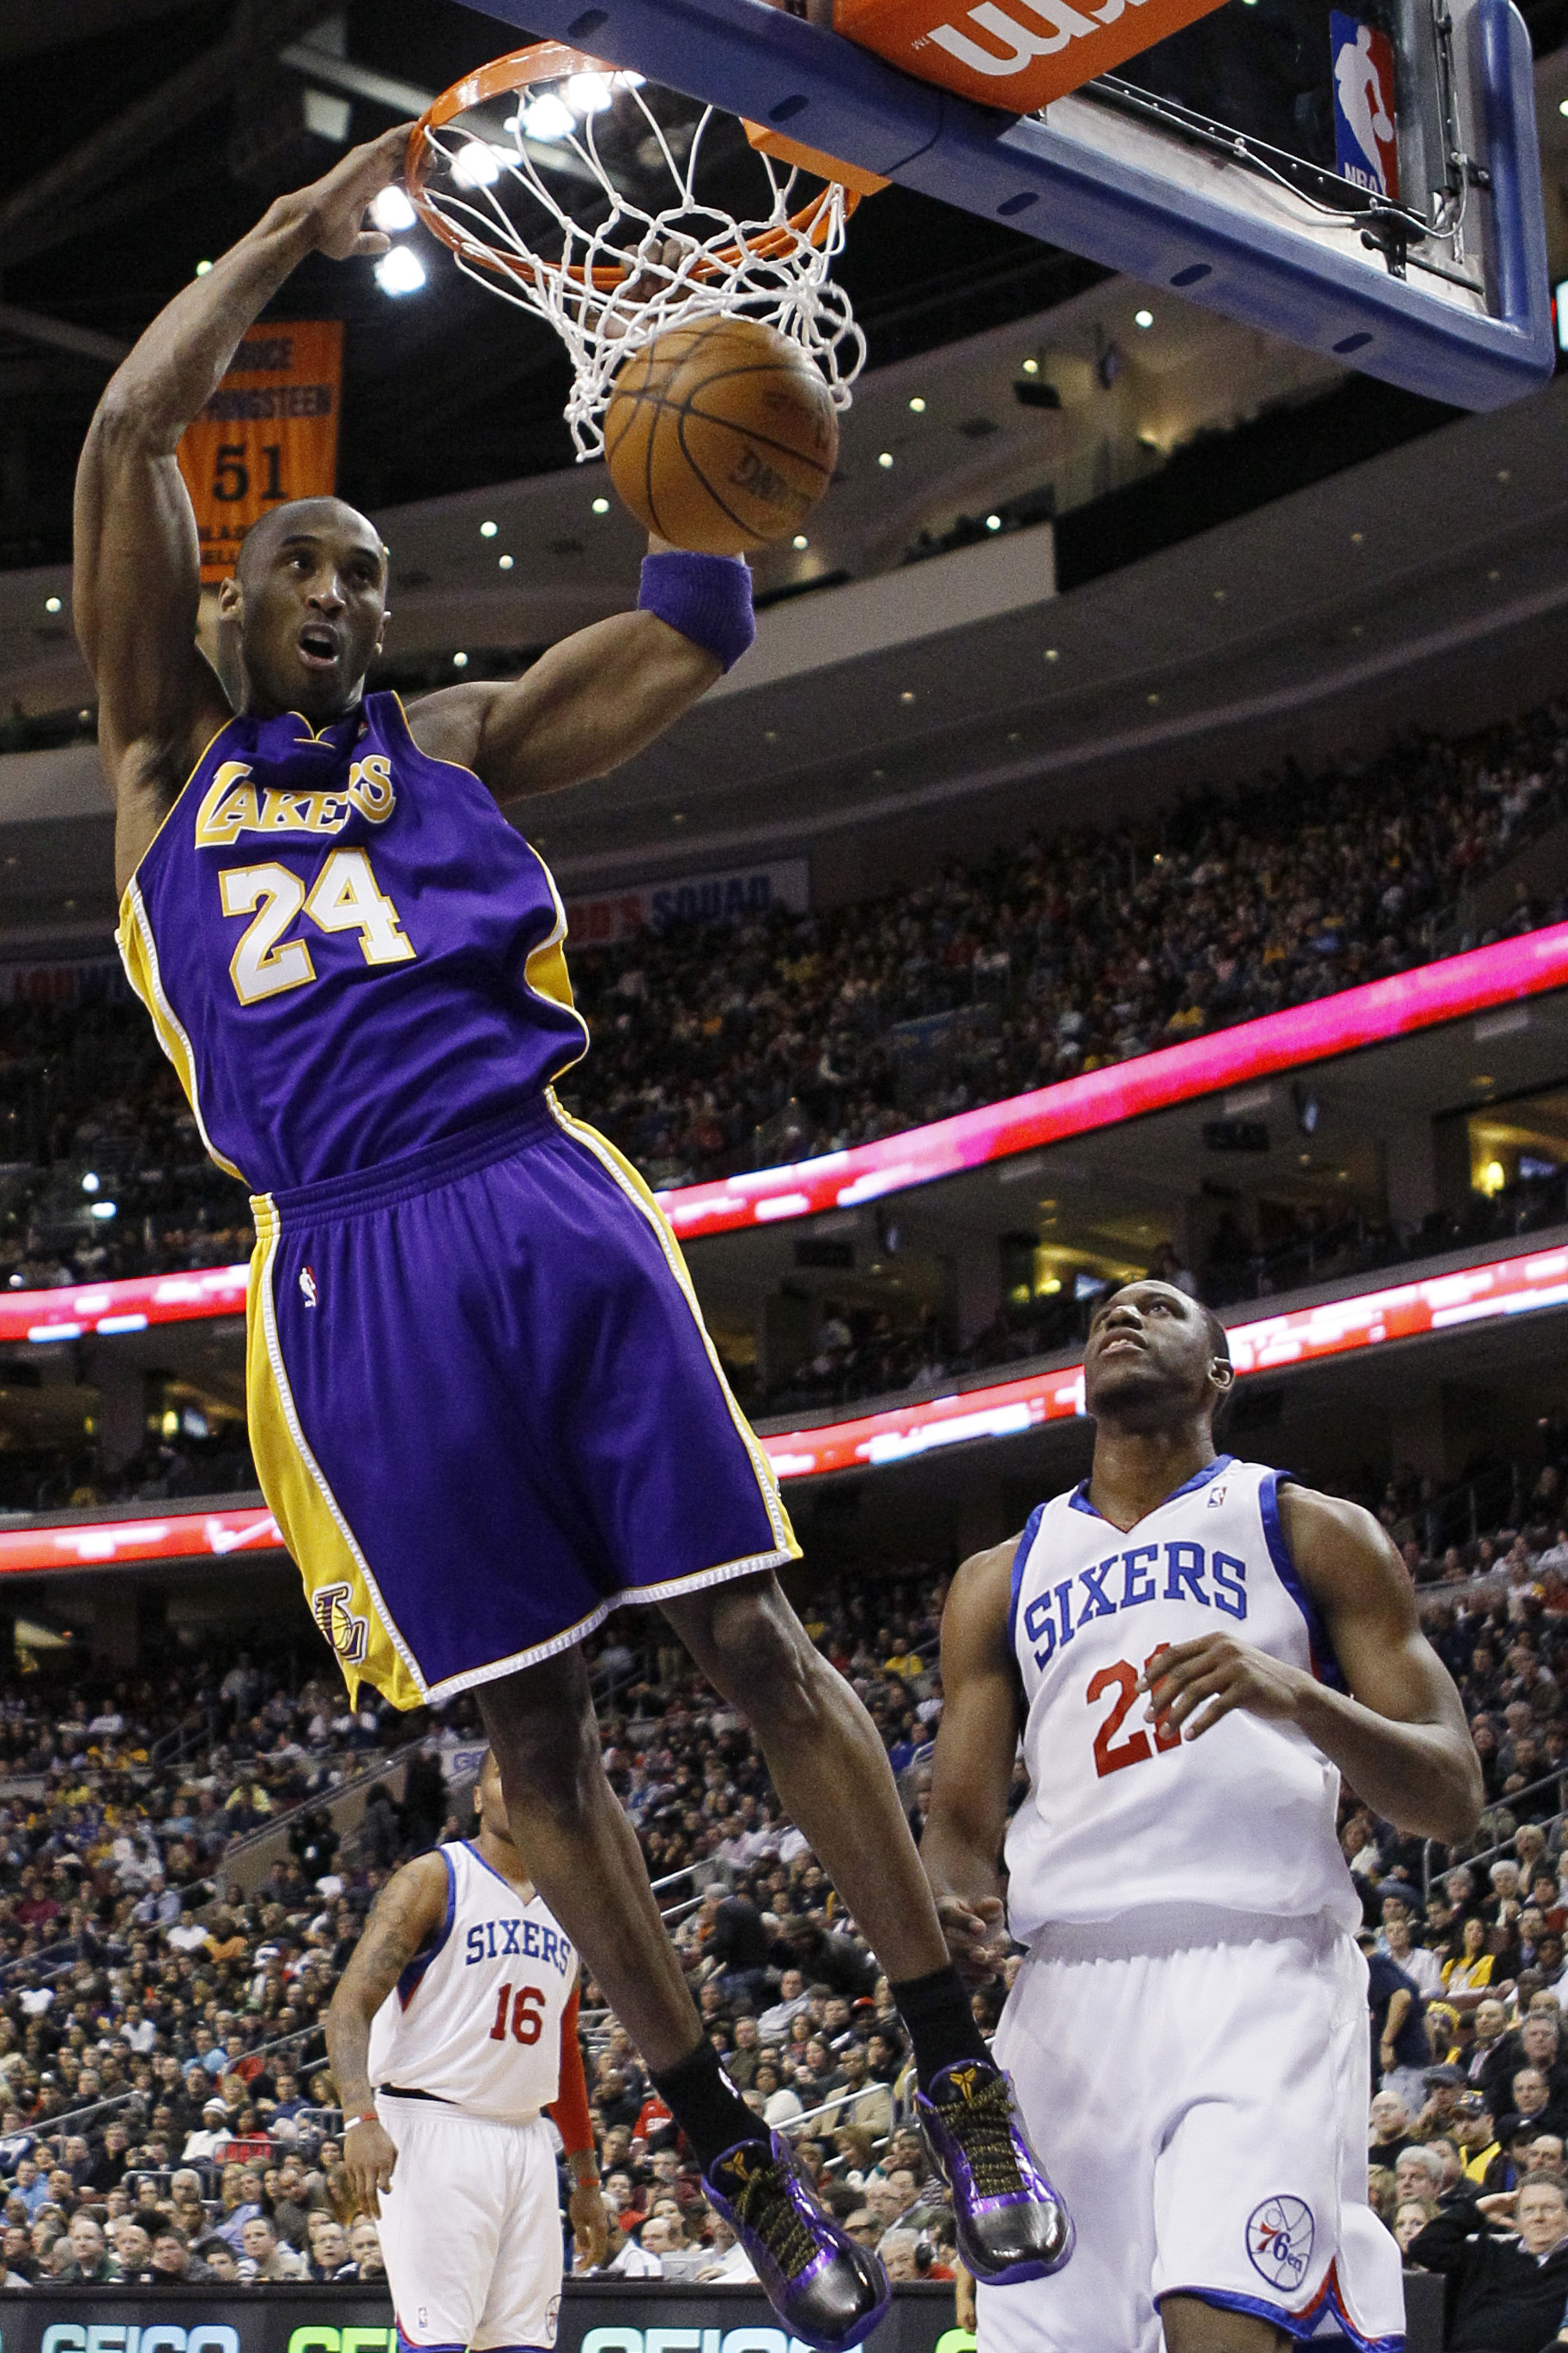 Lakers' Kobe Bryant, left, dunks as Philadelphia 76ers' Thaddeus Young looks on in the first half of an NBA basketball game on Friday in Philadelphia,...